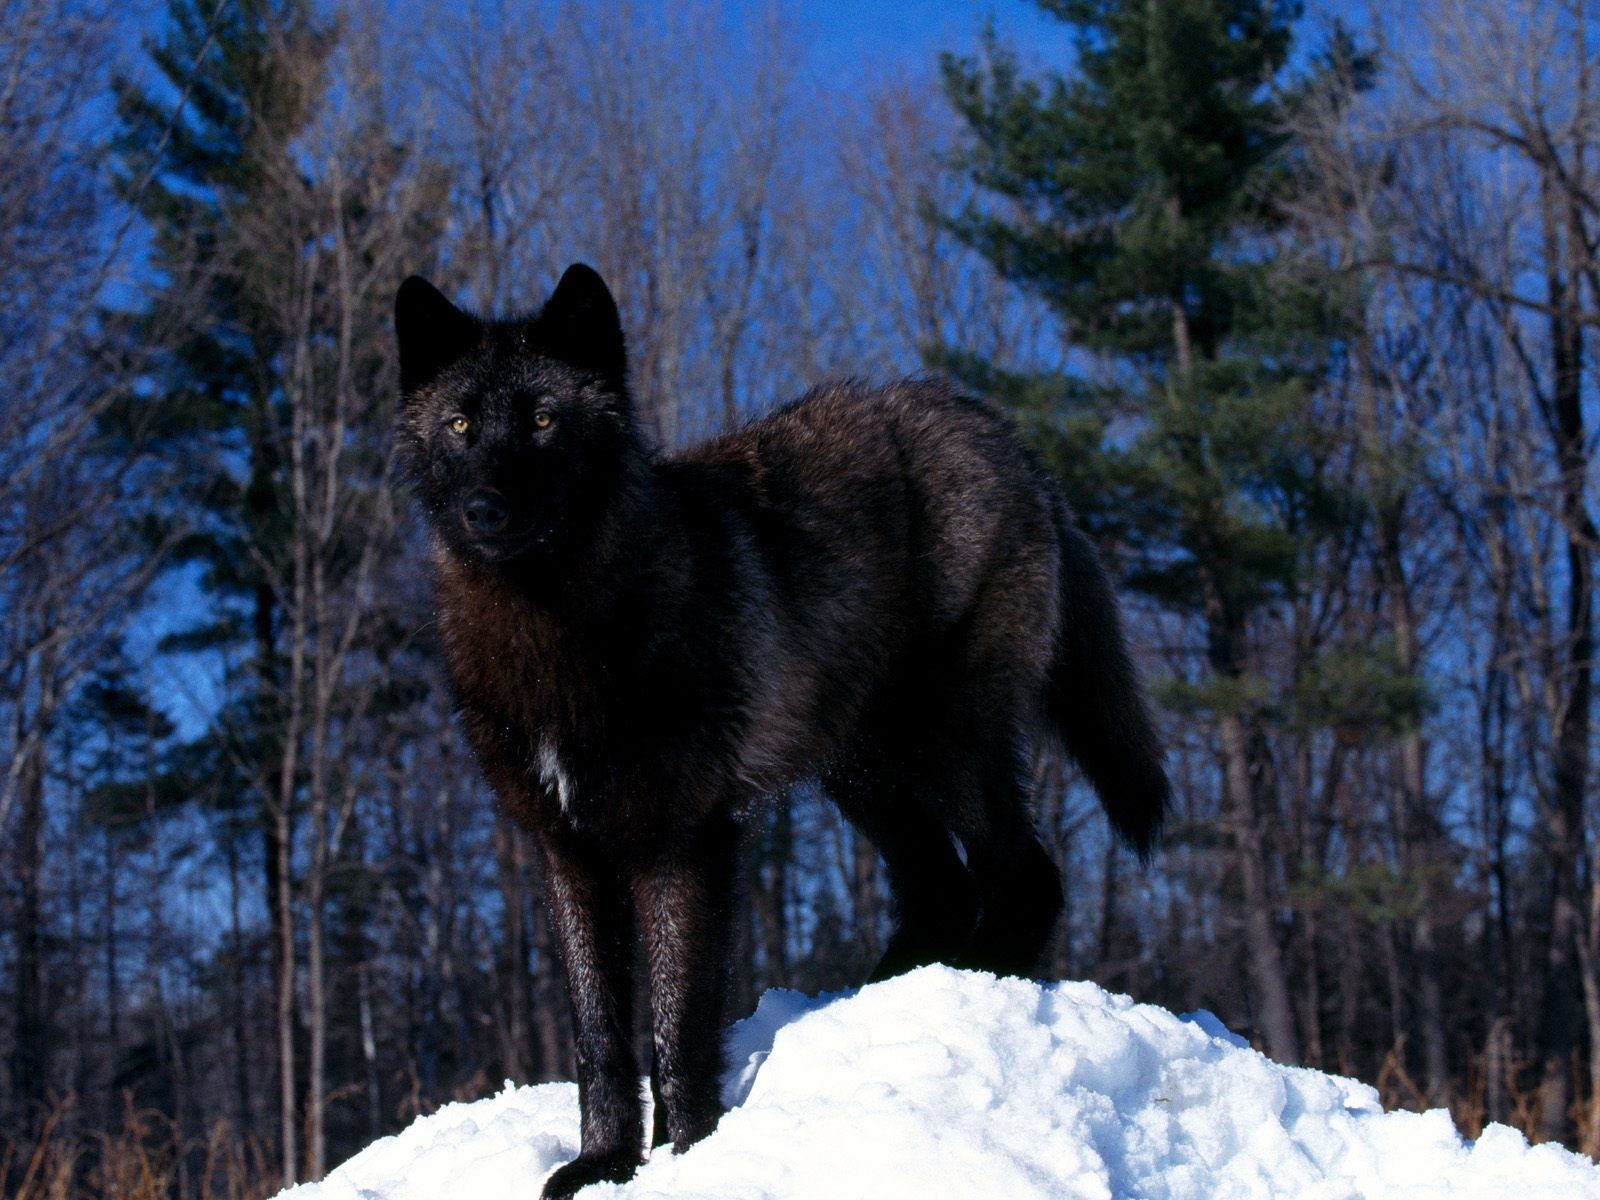 Snow wallpaper wallpapers for free download about 3069 wallpapers black wolf in snow wallpaper wolves animals voltagebd Choice Image